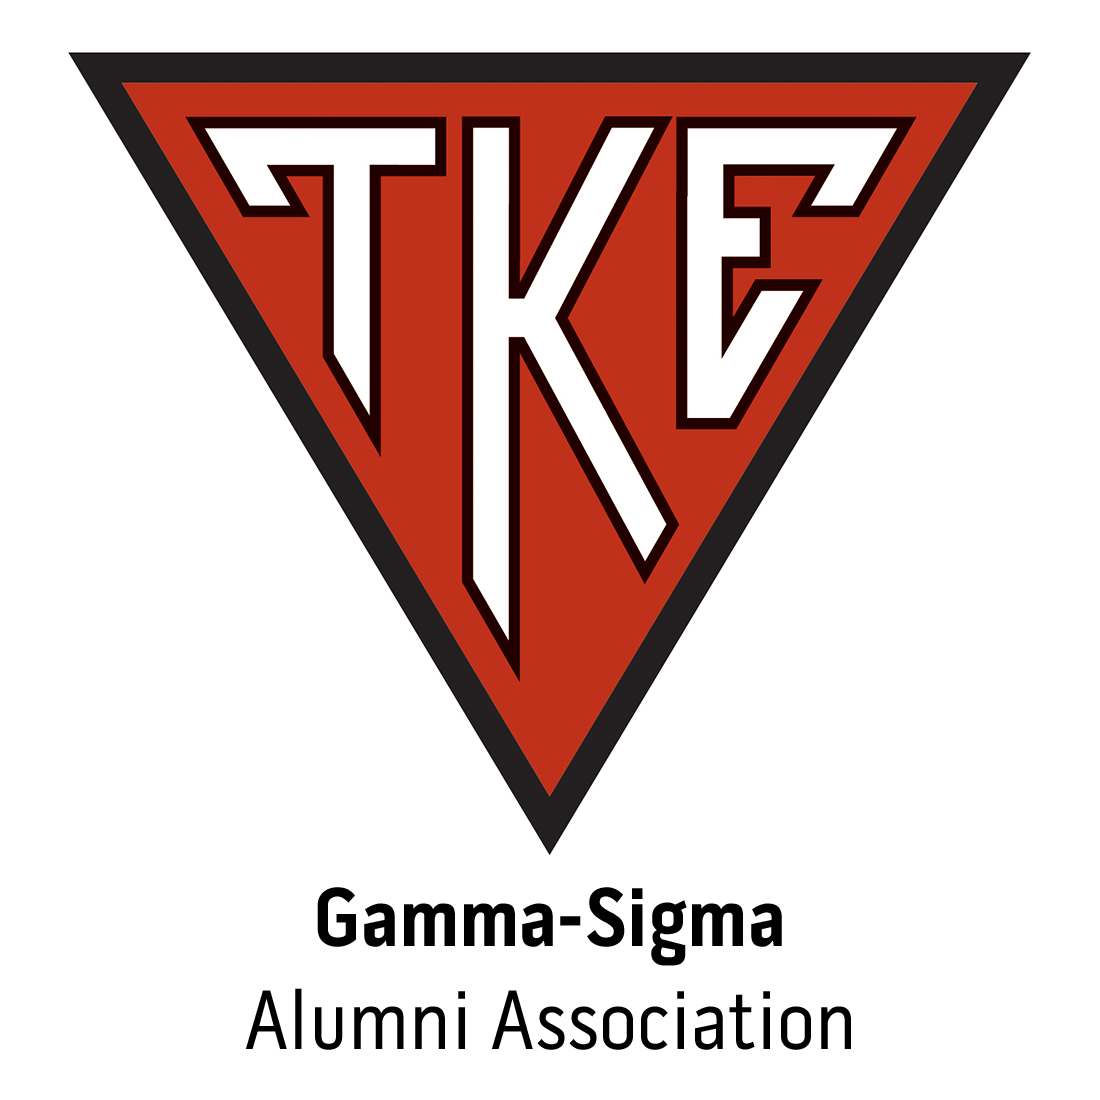 Gamma-Sigma Alumni Association for University of Kentucky